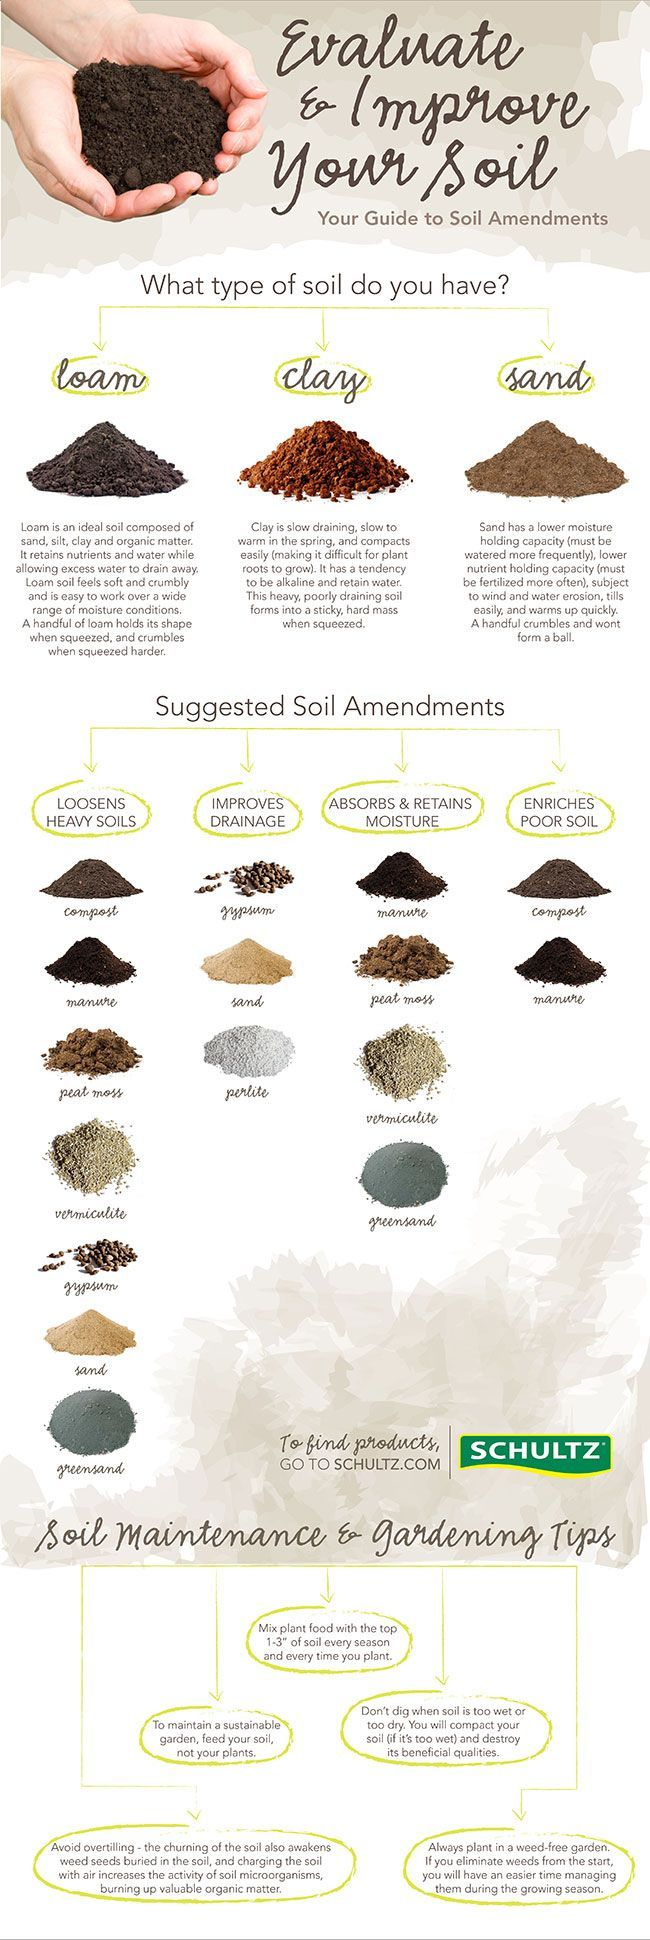 Evaluate & Improve Your Soil - Infinity Lawn & Garden